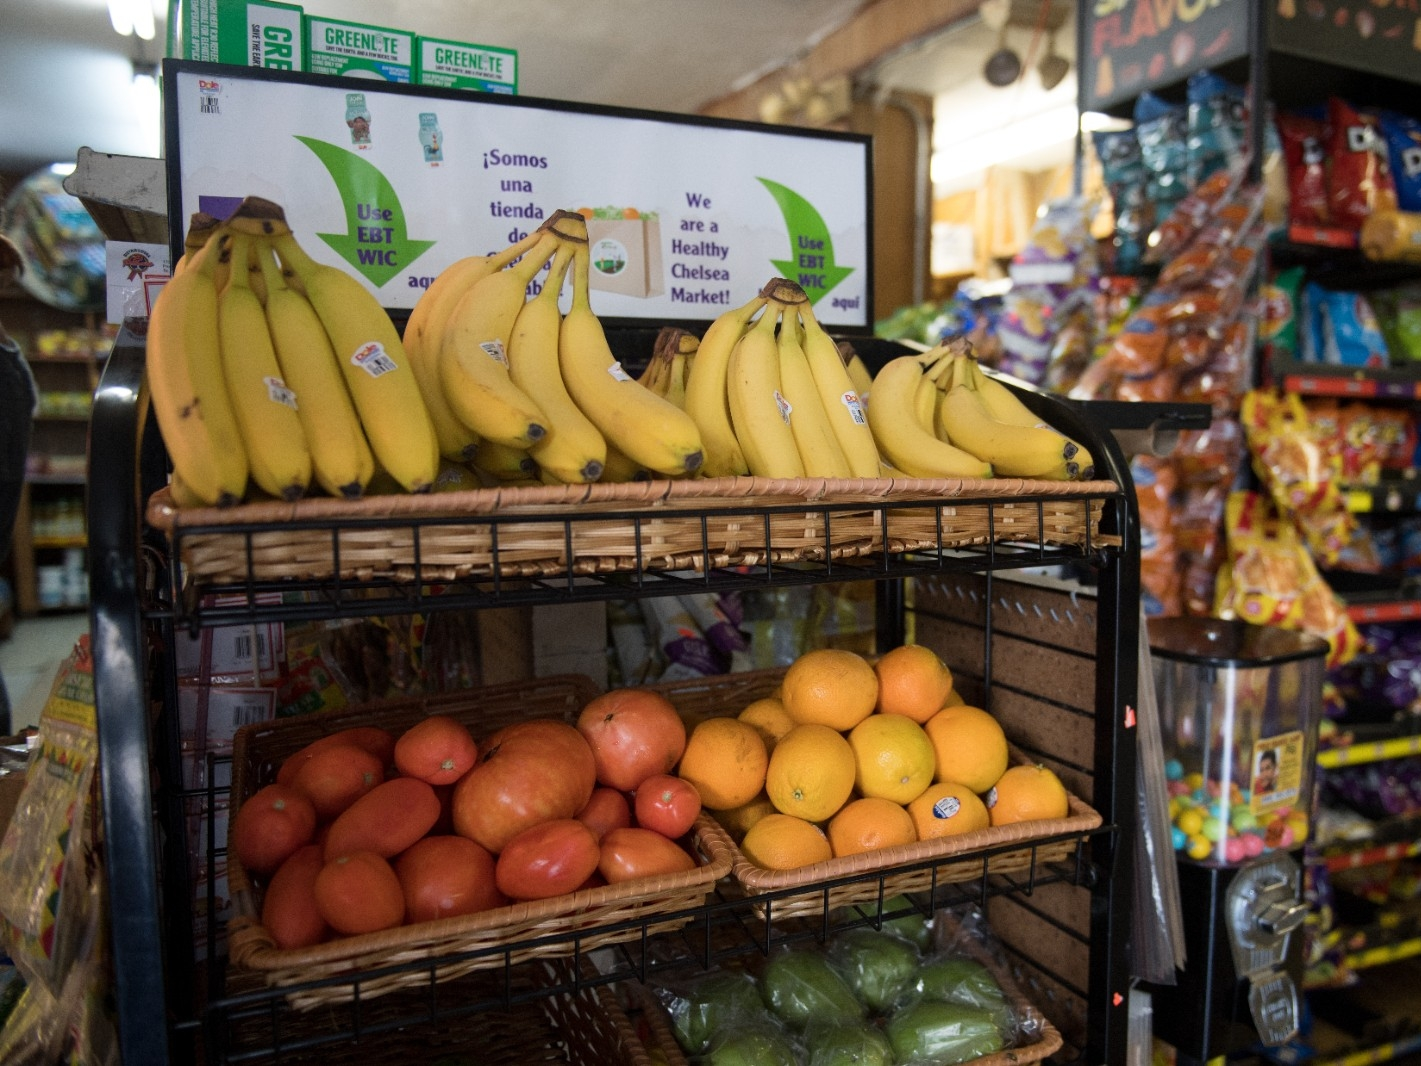 A fruit and vegetable display inside a corner store.